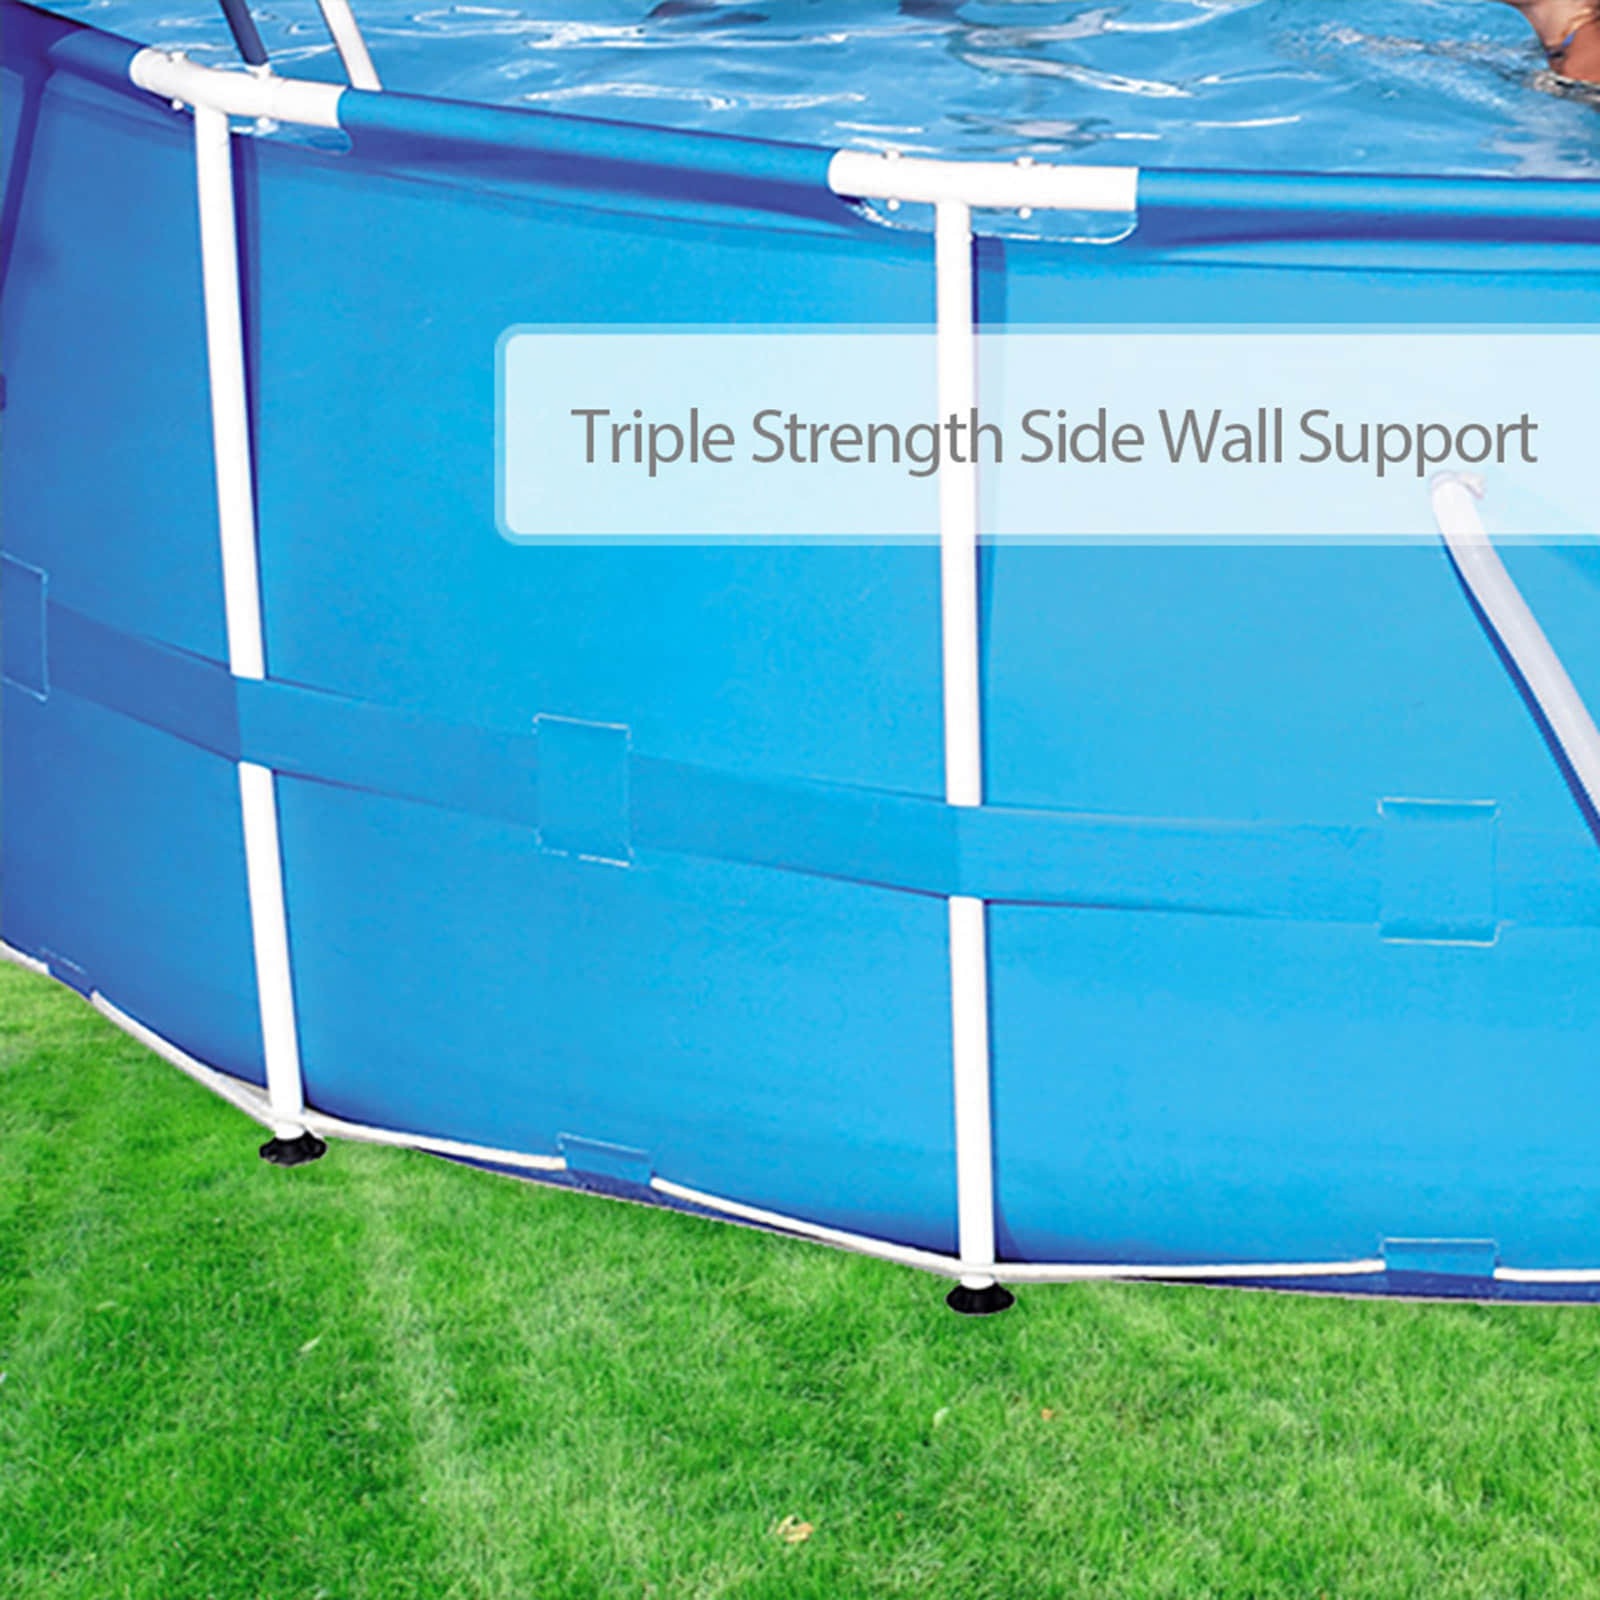 Bestway above ground swimming pool round steel frame filter pump15ft 457cm 657664803531 ebay for Steel above ground swimming pools